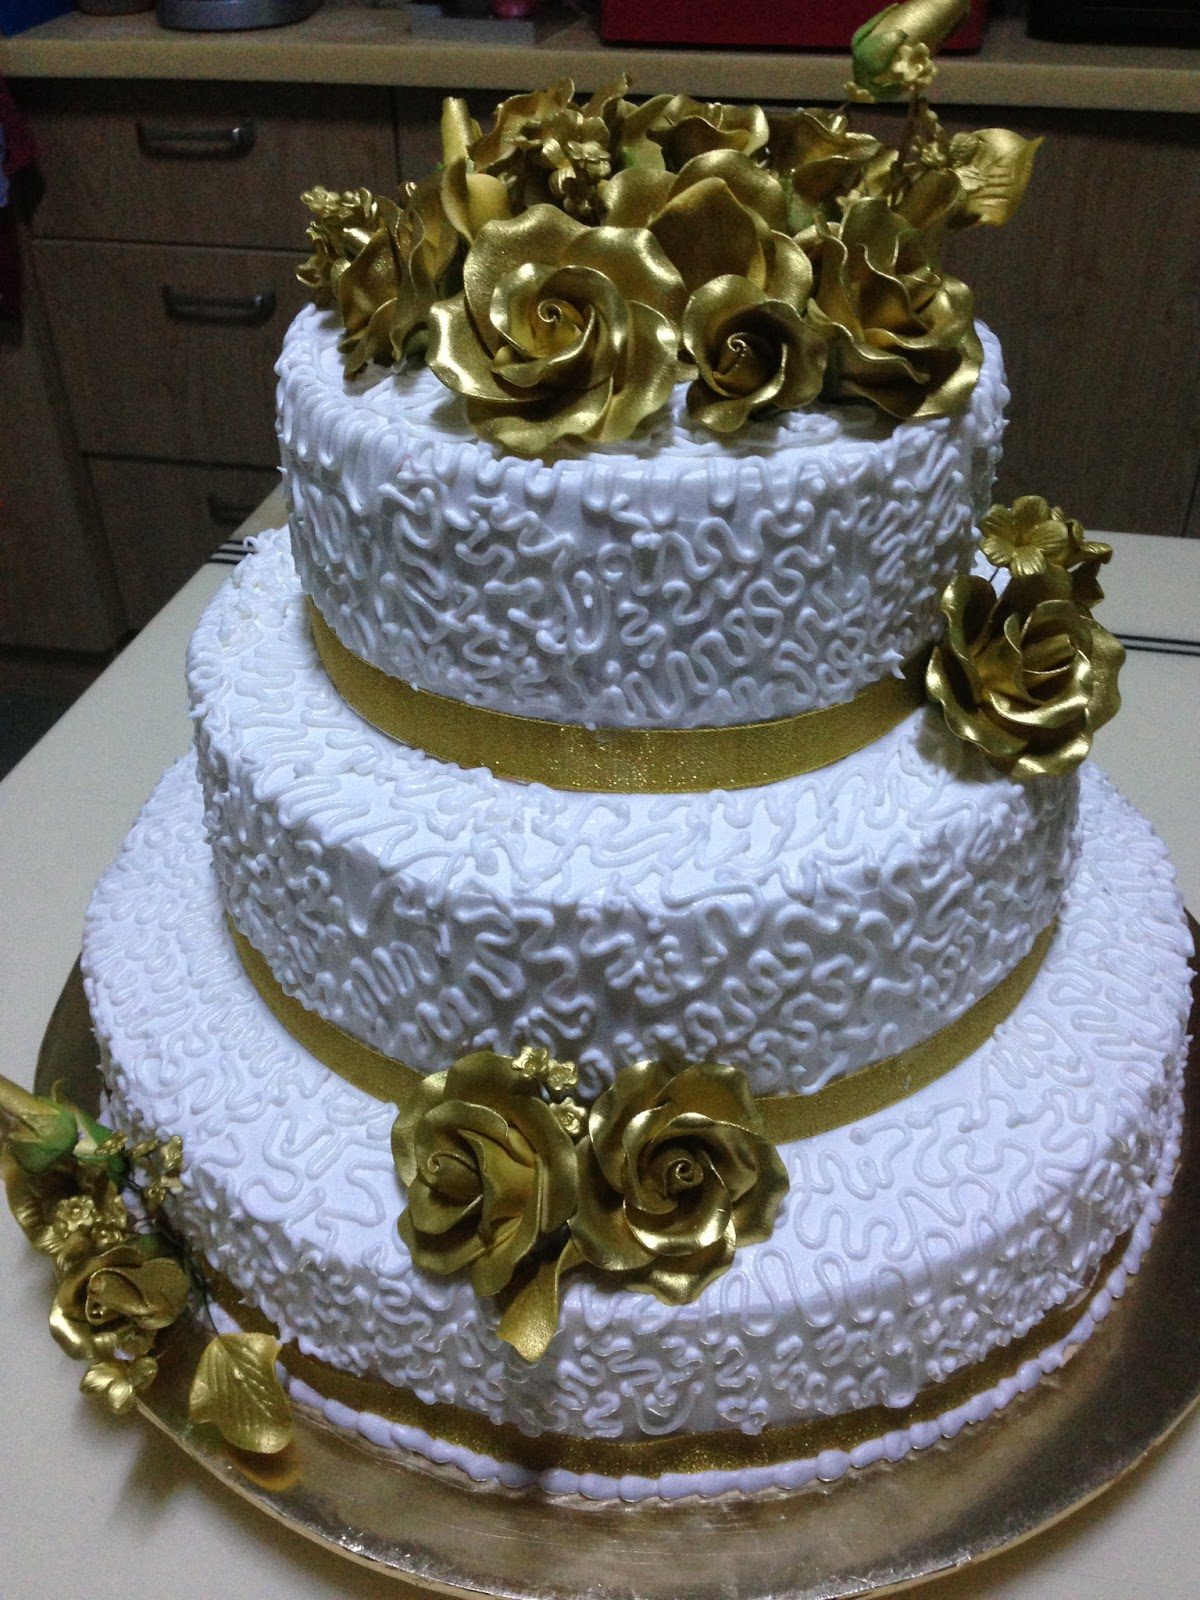 Homemade sweet treats Gold theme wedding cake